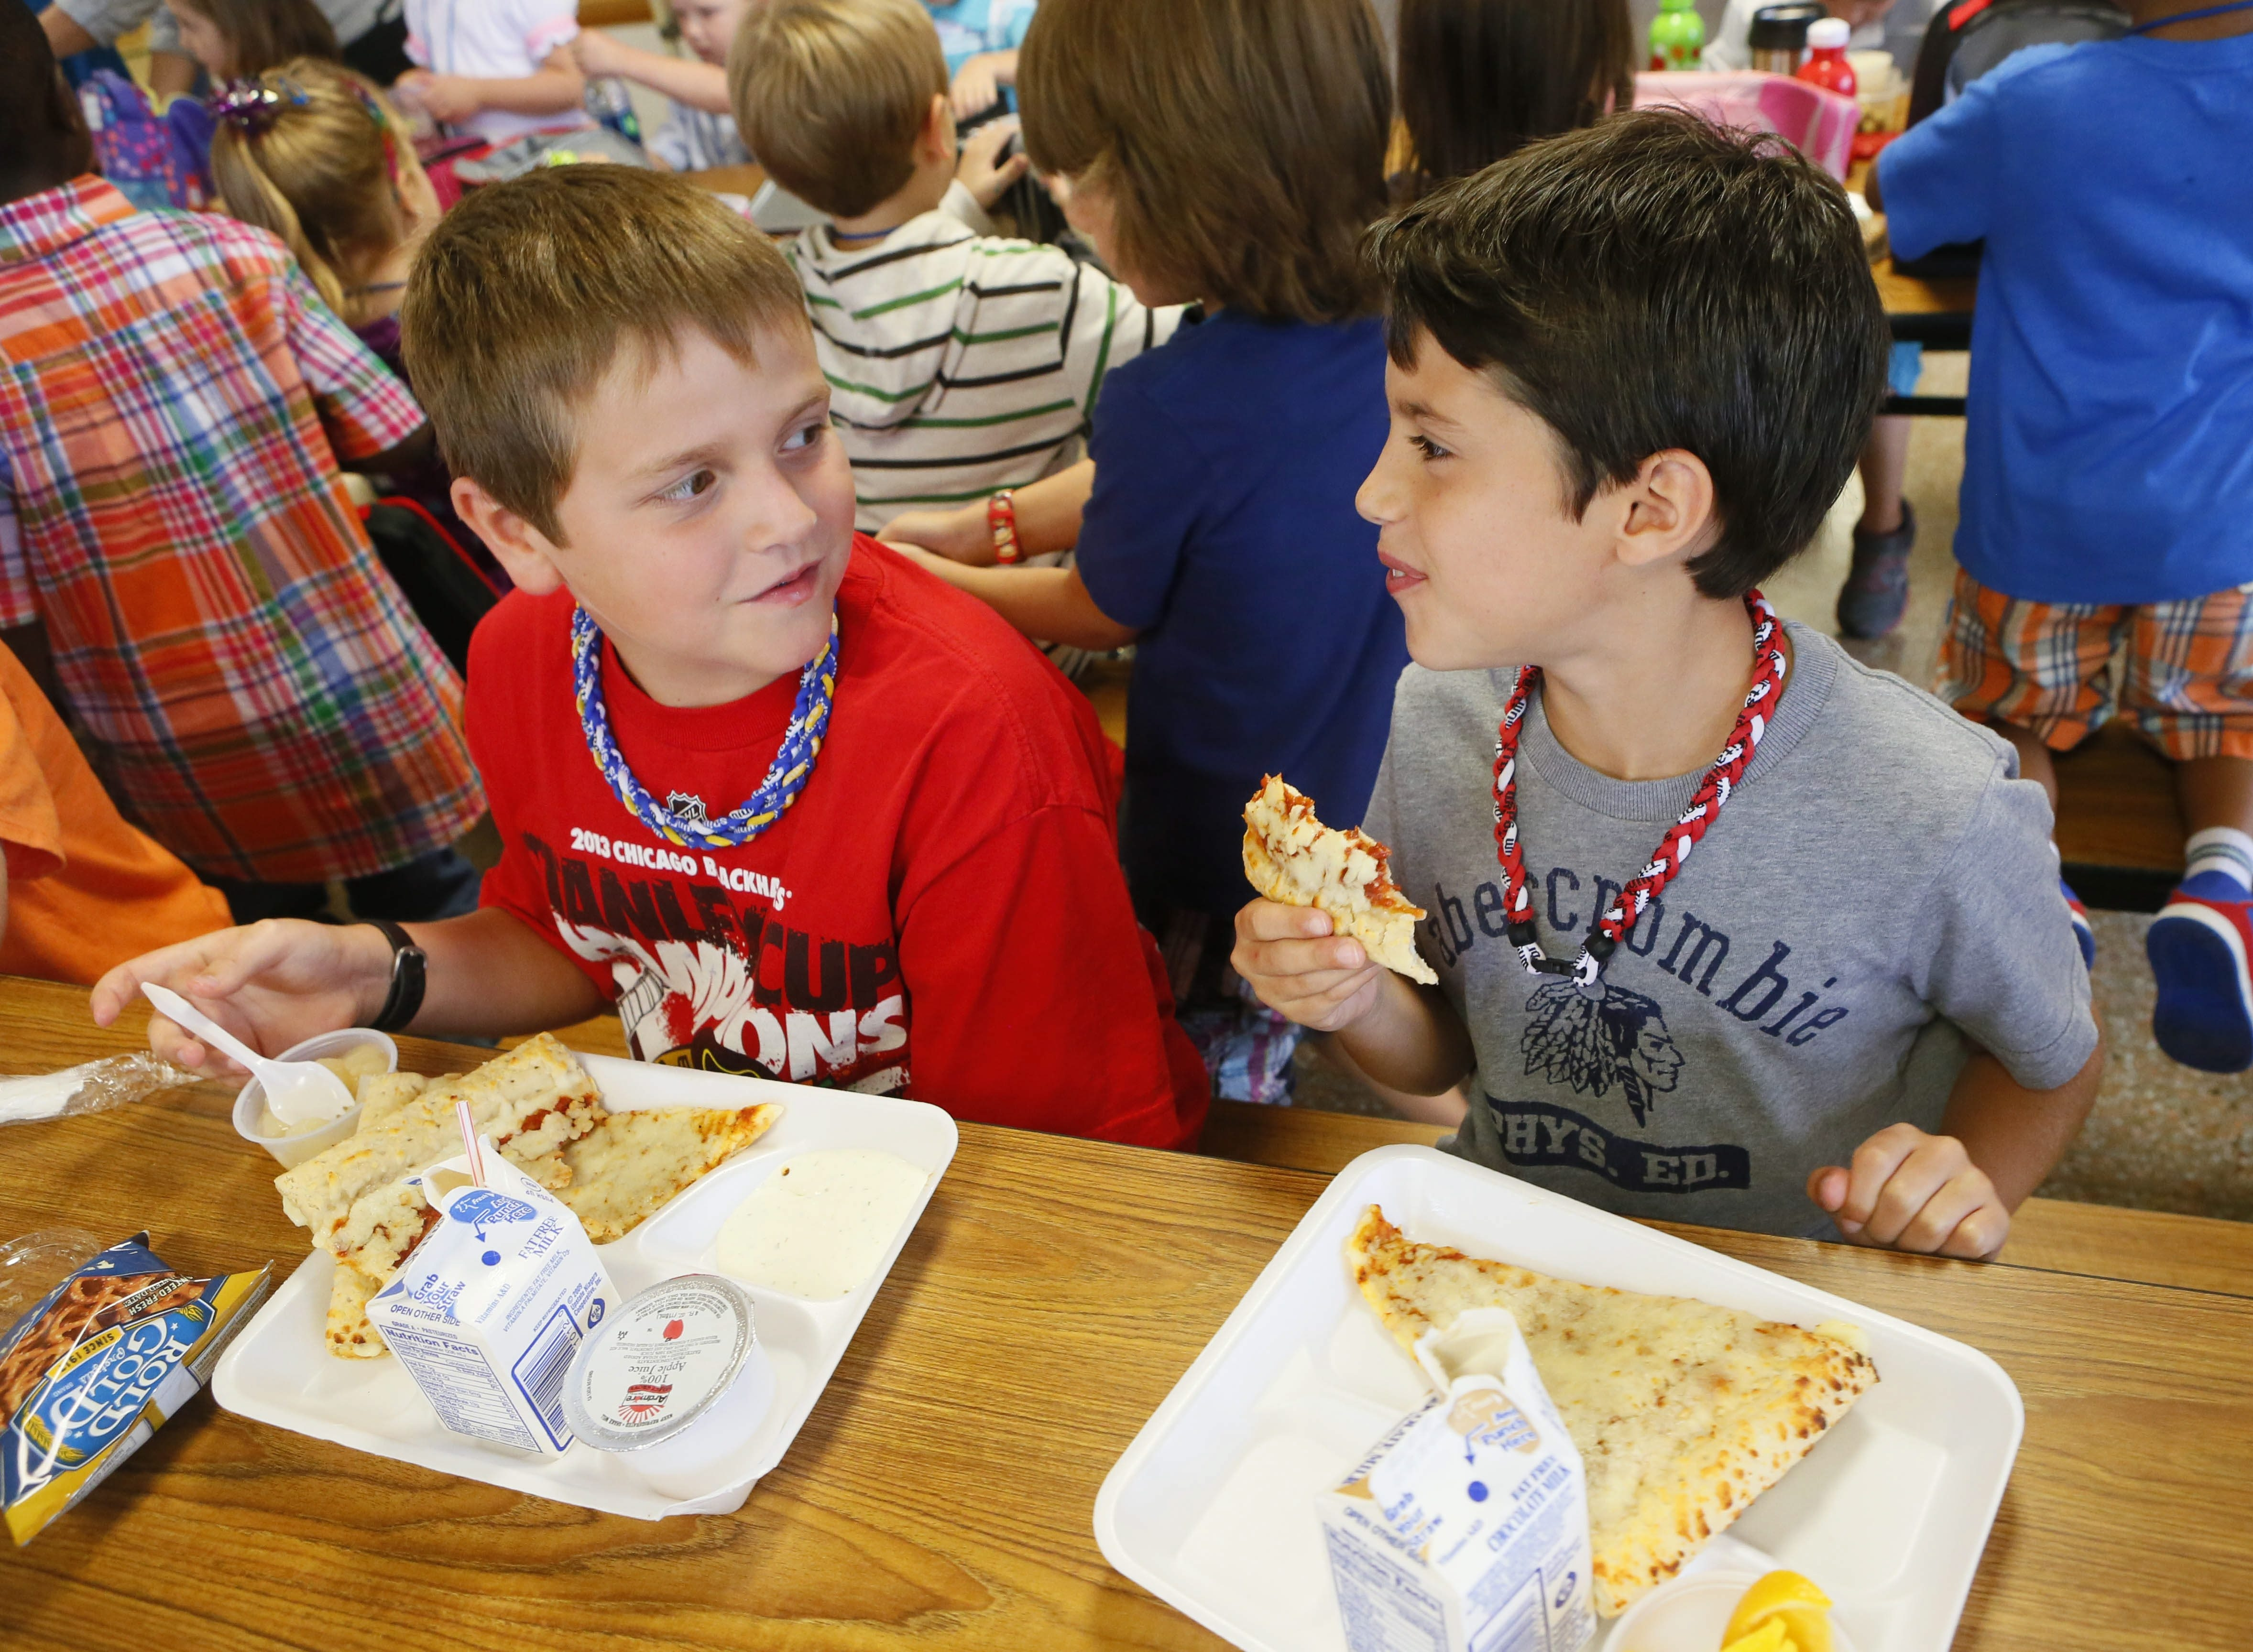 Fourth-graders Ben Balazs, left, and Caden Cavalieri seem to be enjoying their lunches on the first day of school at Maple East Elementary School in the Williamsville district Tuesday.